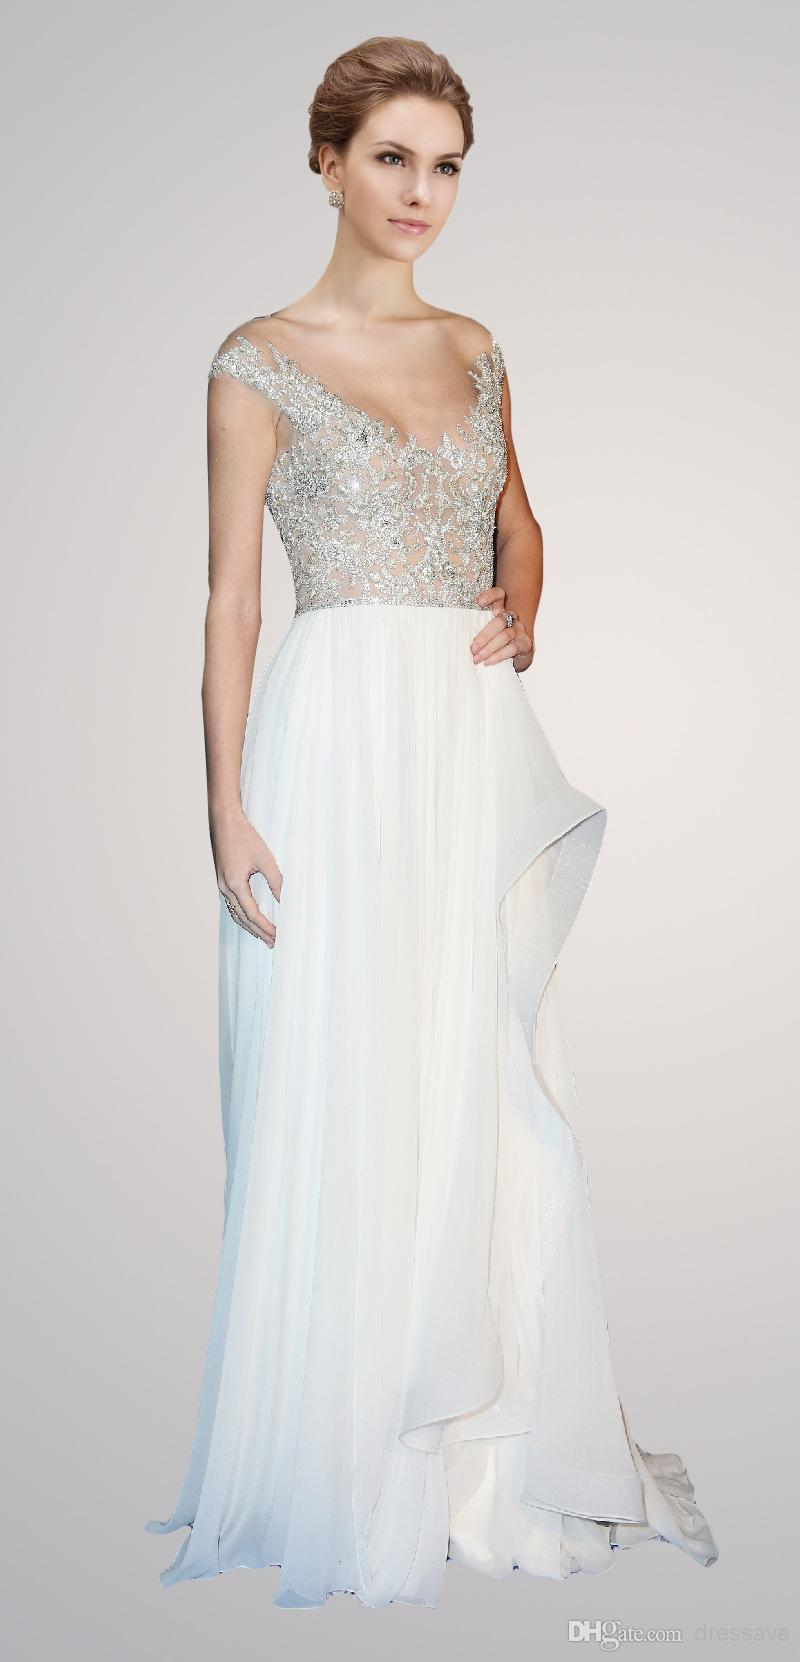 Discount 2014 talor swift evening dresses chiffon cap sleeve crystal beaded glitz illusion floor length chiffon party sheer celebrity dresses cps037 online with $110.49/piece